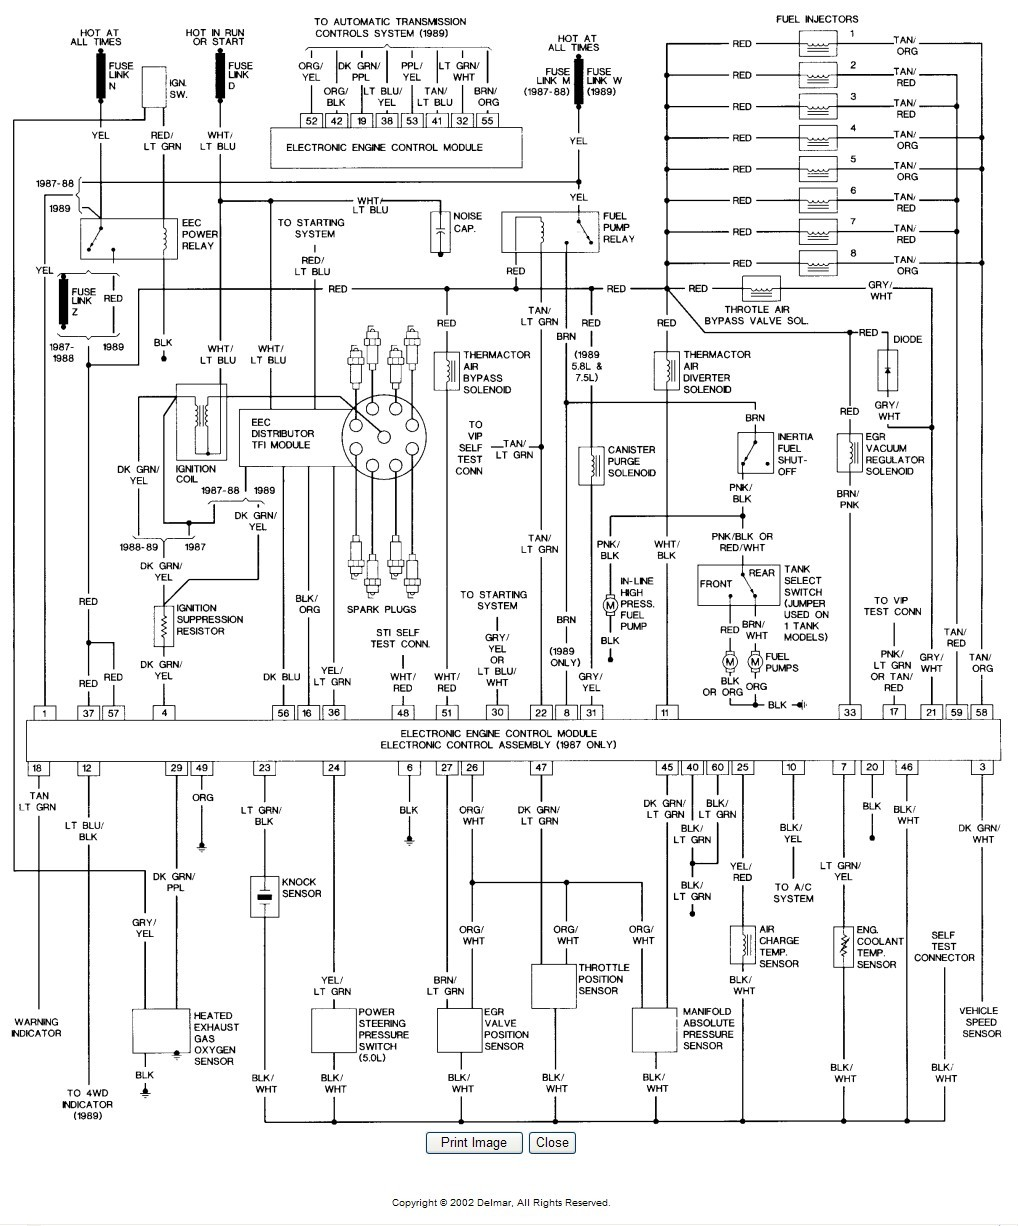 please help i need the wiring schematics for my 1988 2008 f150 trailer wiring  diagram 2008 f150 starter wiring diagram